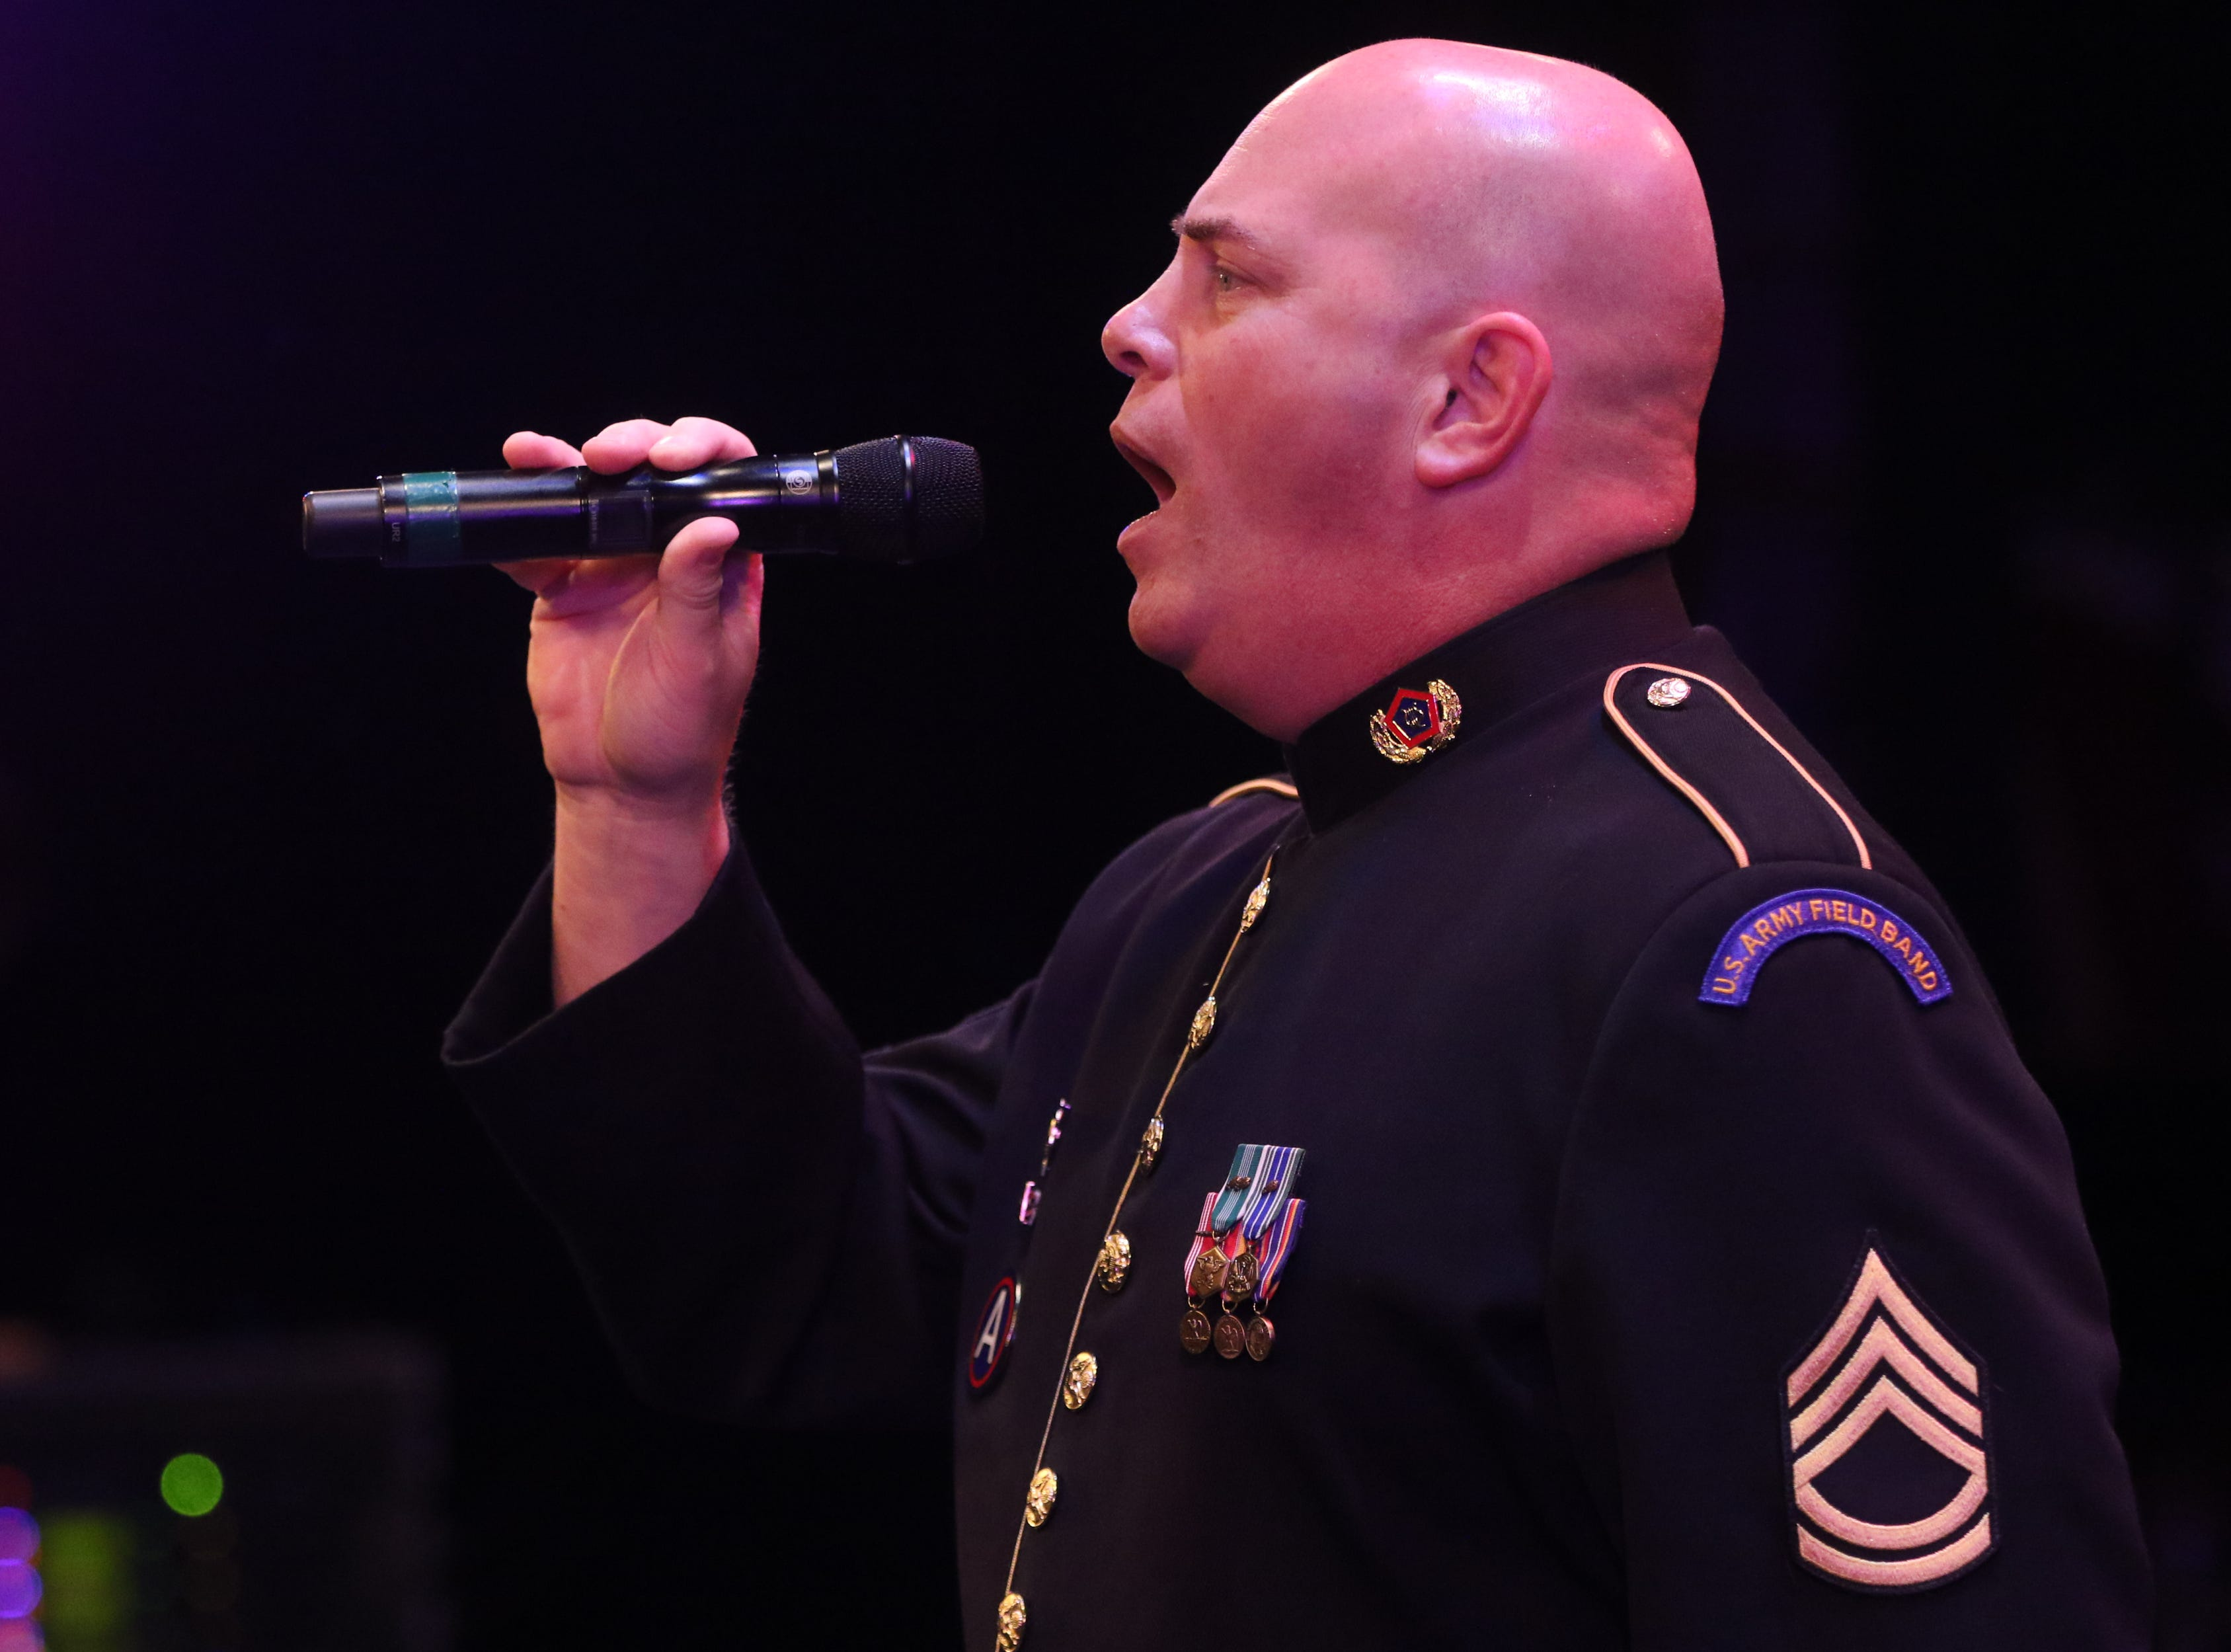 Sgt. First Class Randy Wright sings 'The Star-Spangled Banner', in Wayne.  The United States Army Jazz Ambassadors Field Band performed at Wayne Hills High School, Thursday, March 21, 2019.  This was the eleventh day of their tour, which lasts more than a month.